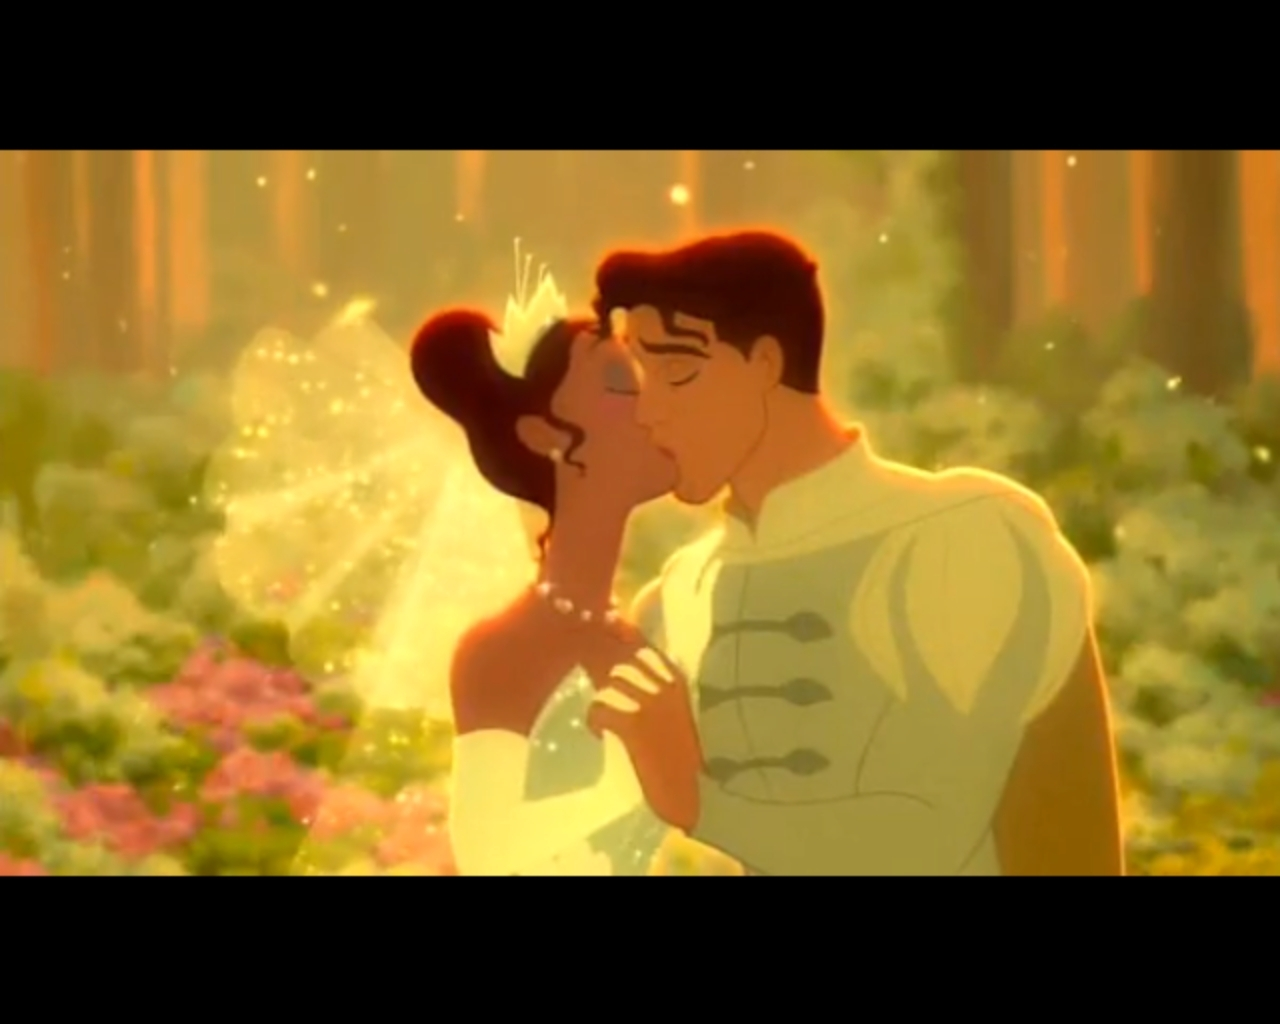 Tiana and Naveen | The Cute Disney Couples | Pinterest